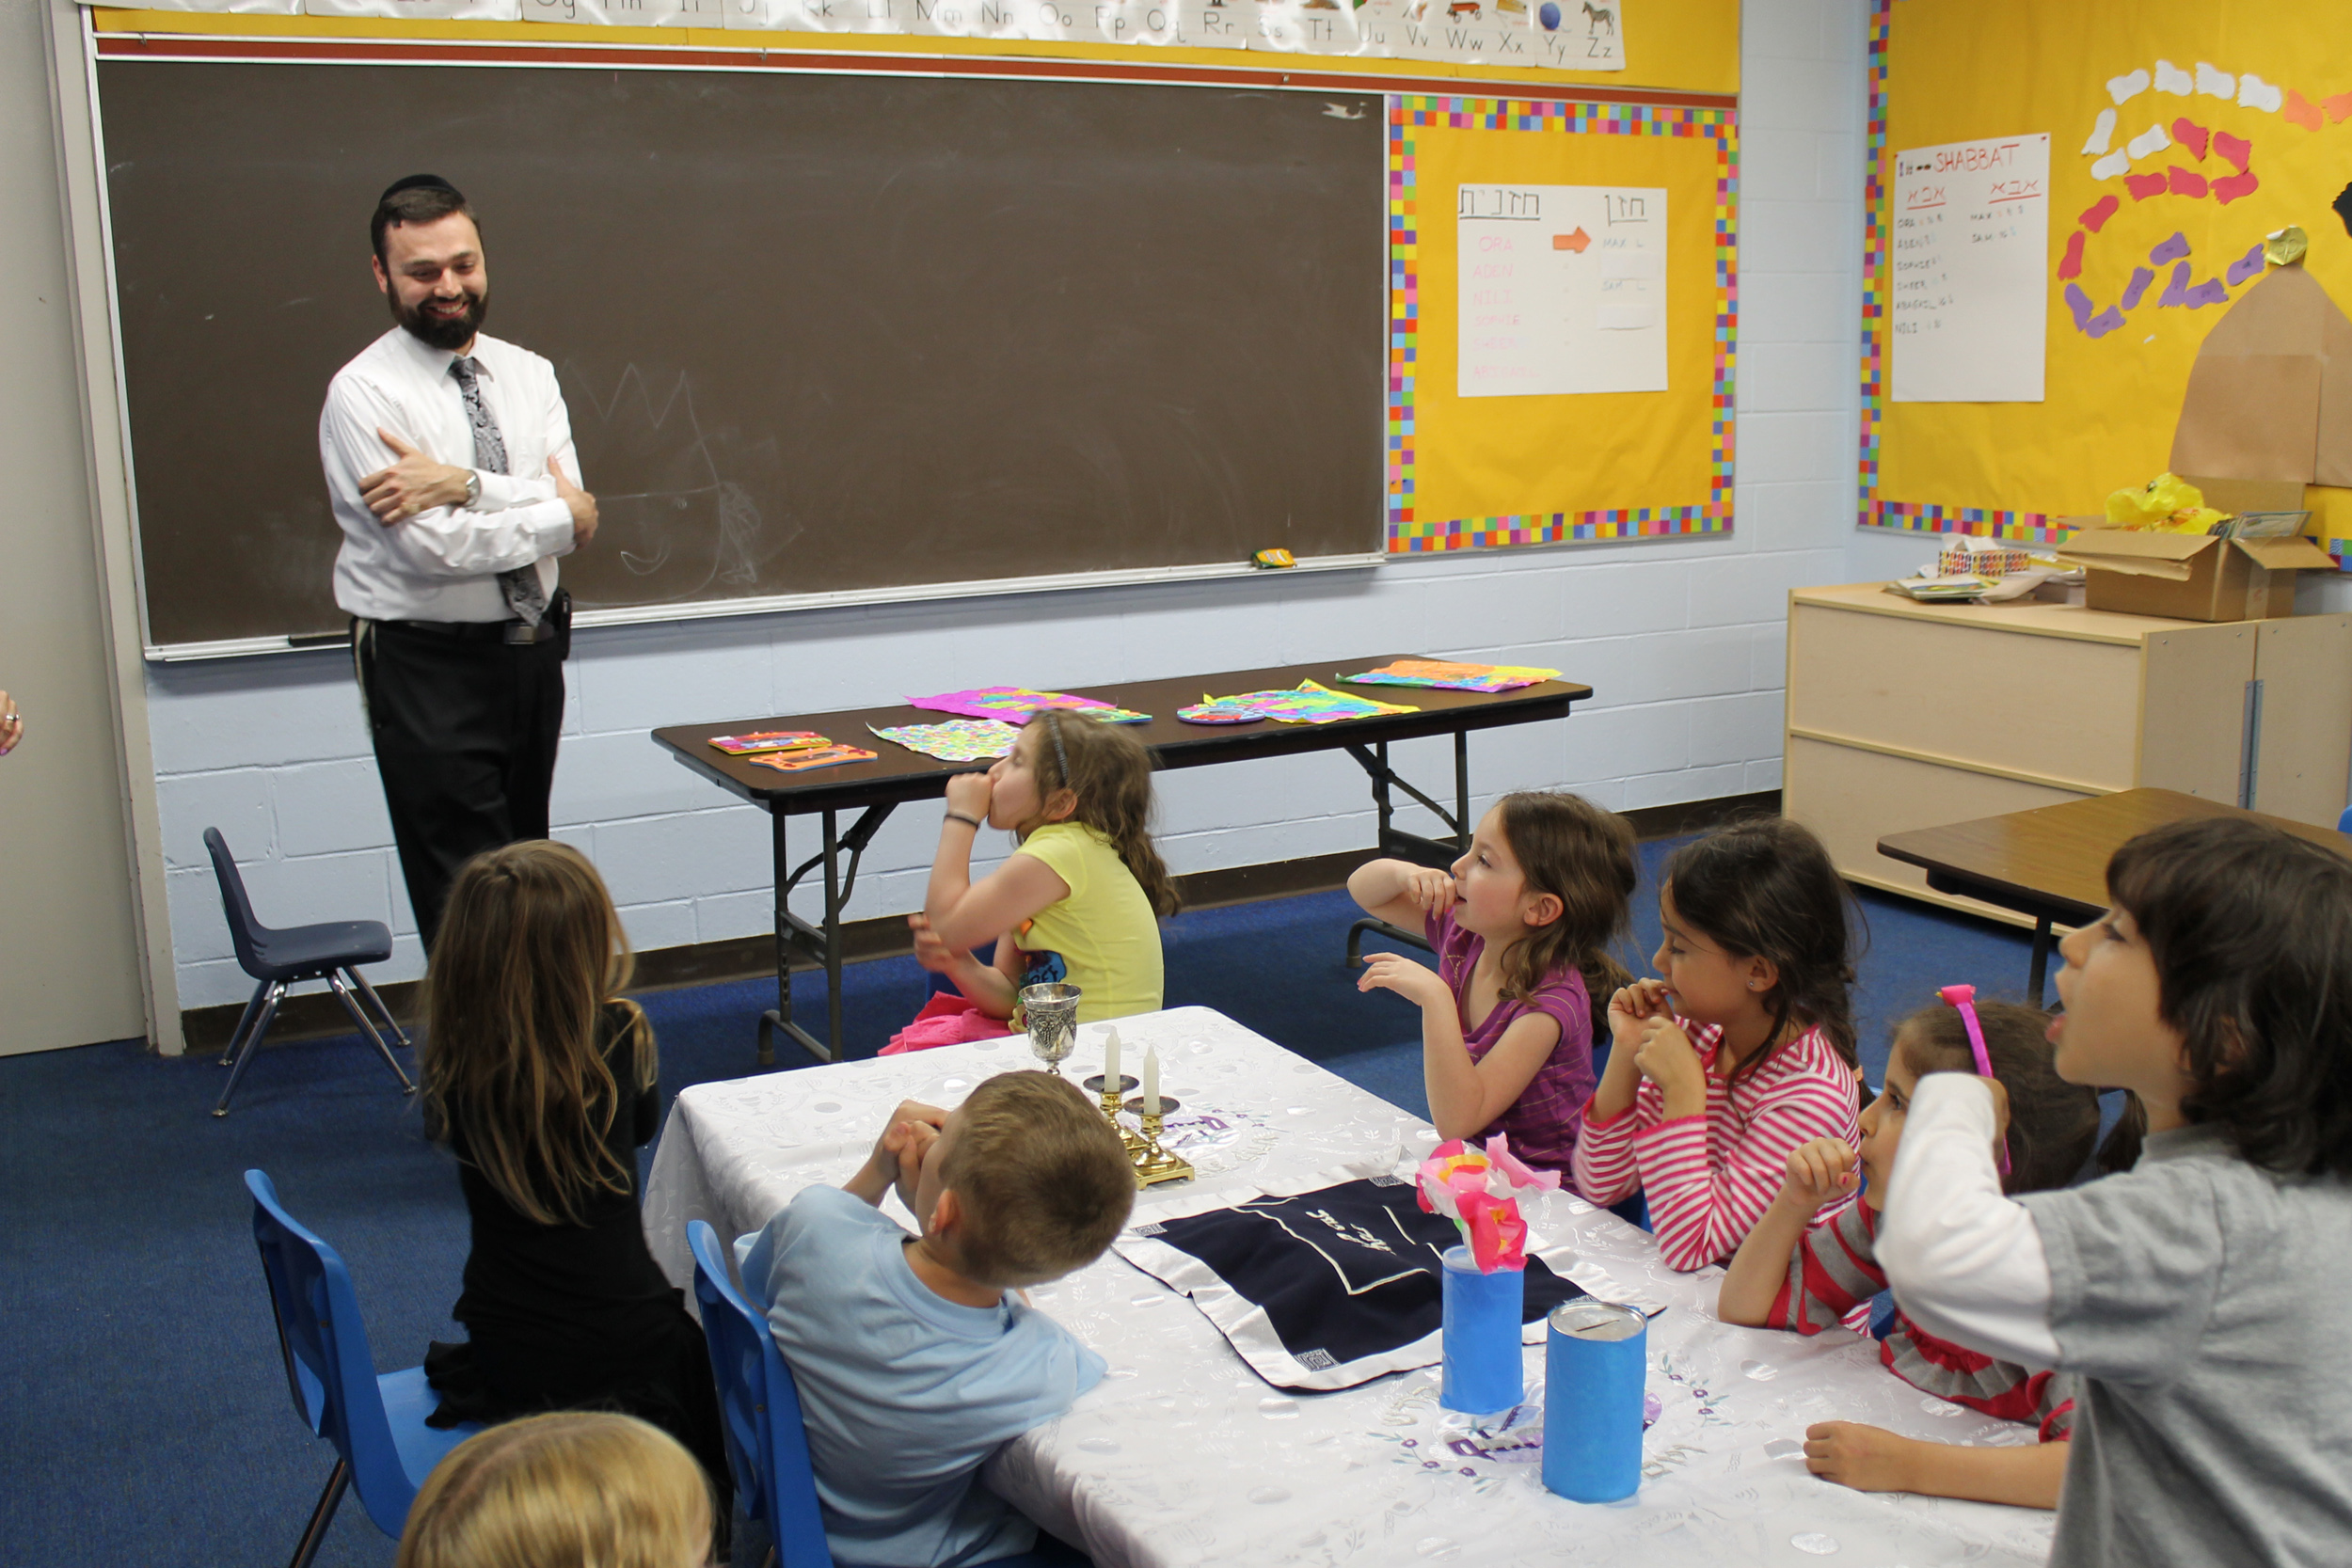 Worksheet After School Learning Programs hebrew charter schools have religious after school programs the curriculum at nefesh yehudi jewish program that serves students from